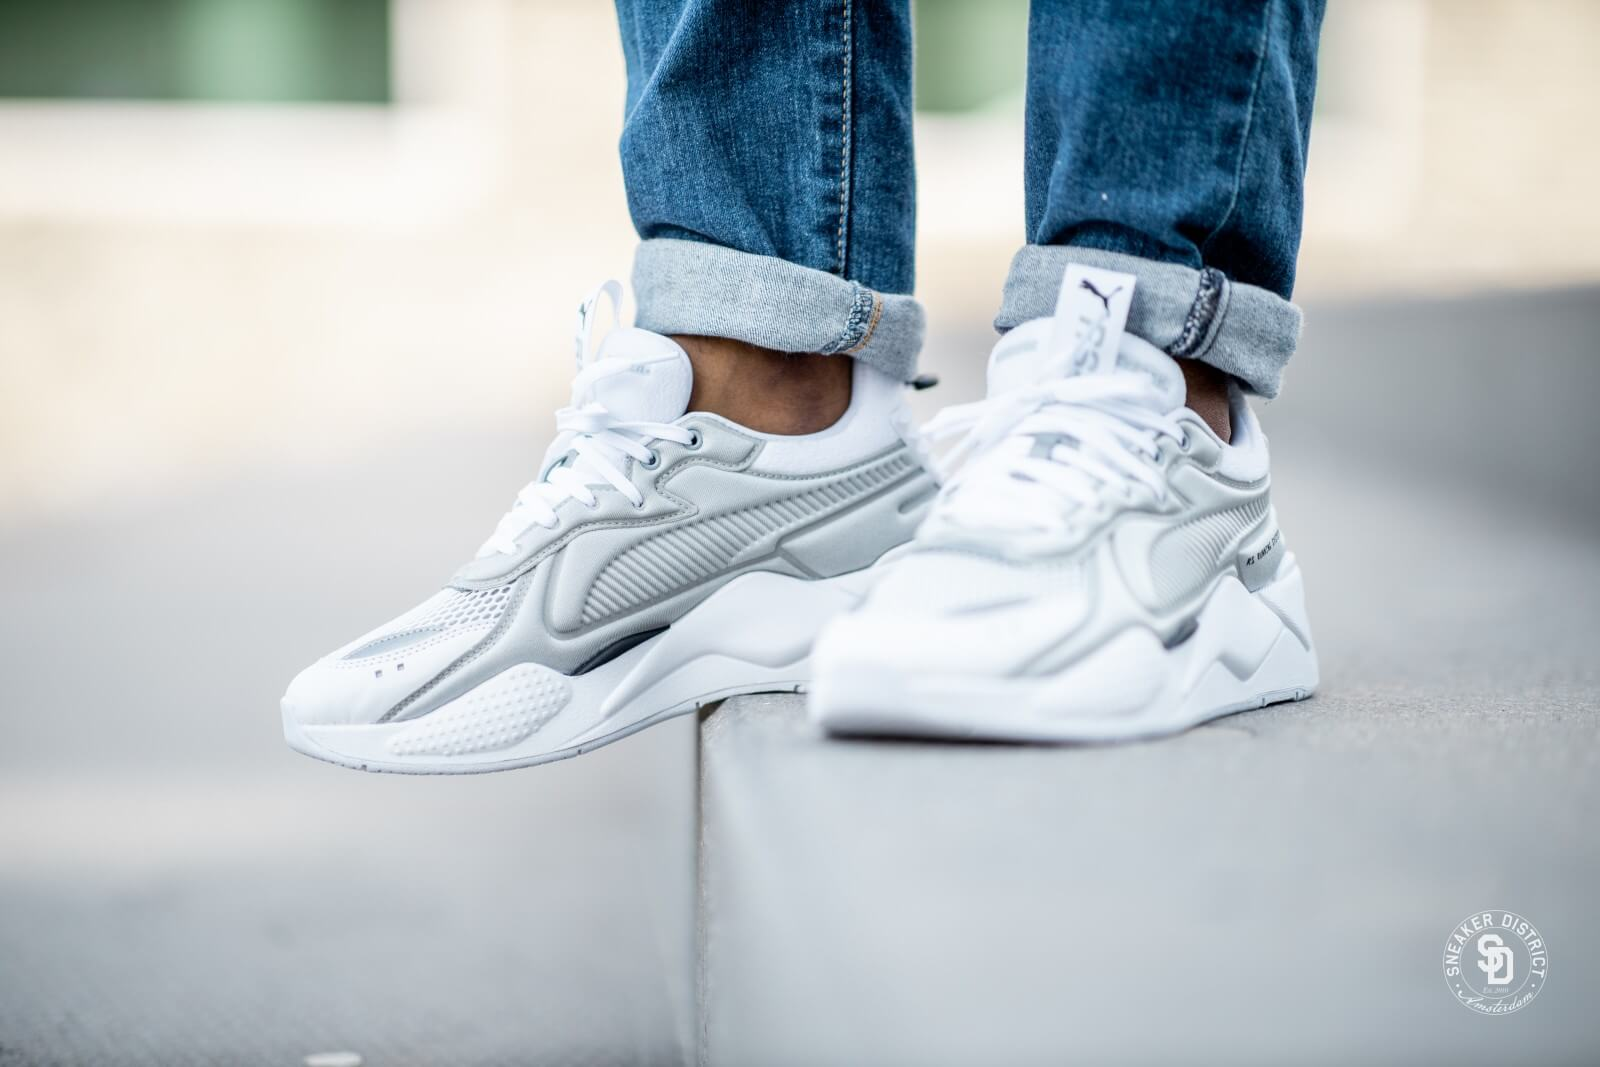 Puma RS-X Softcase Puma White/High Rise - 369819-02